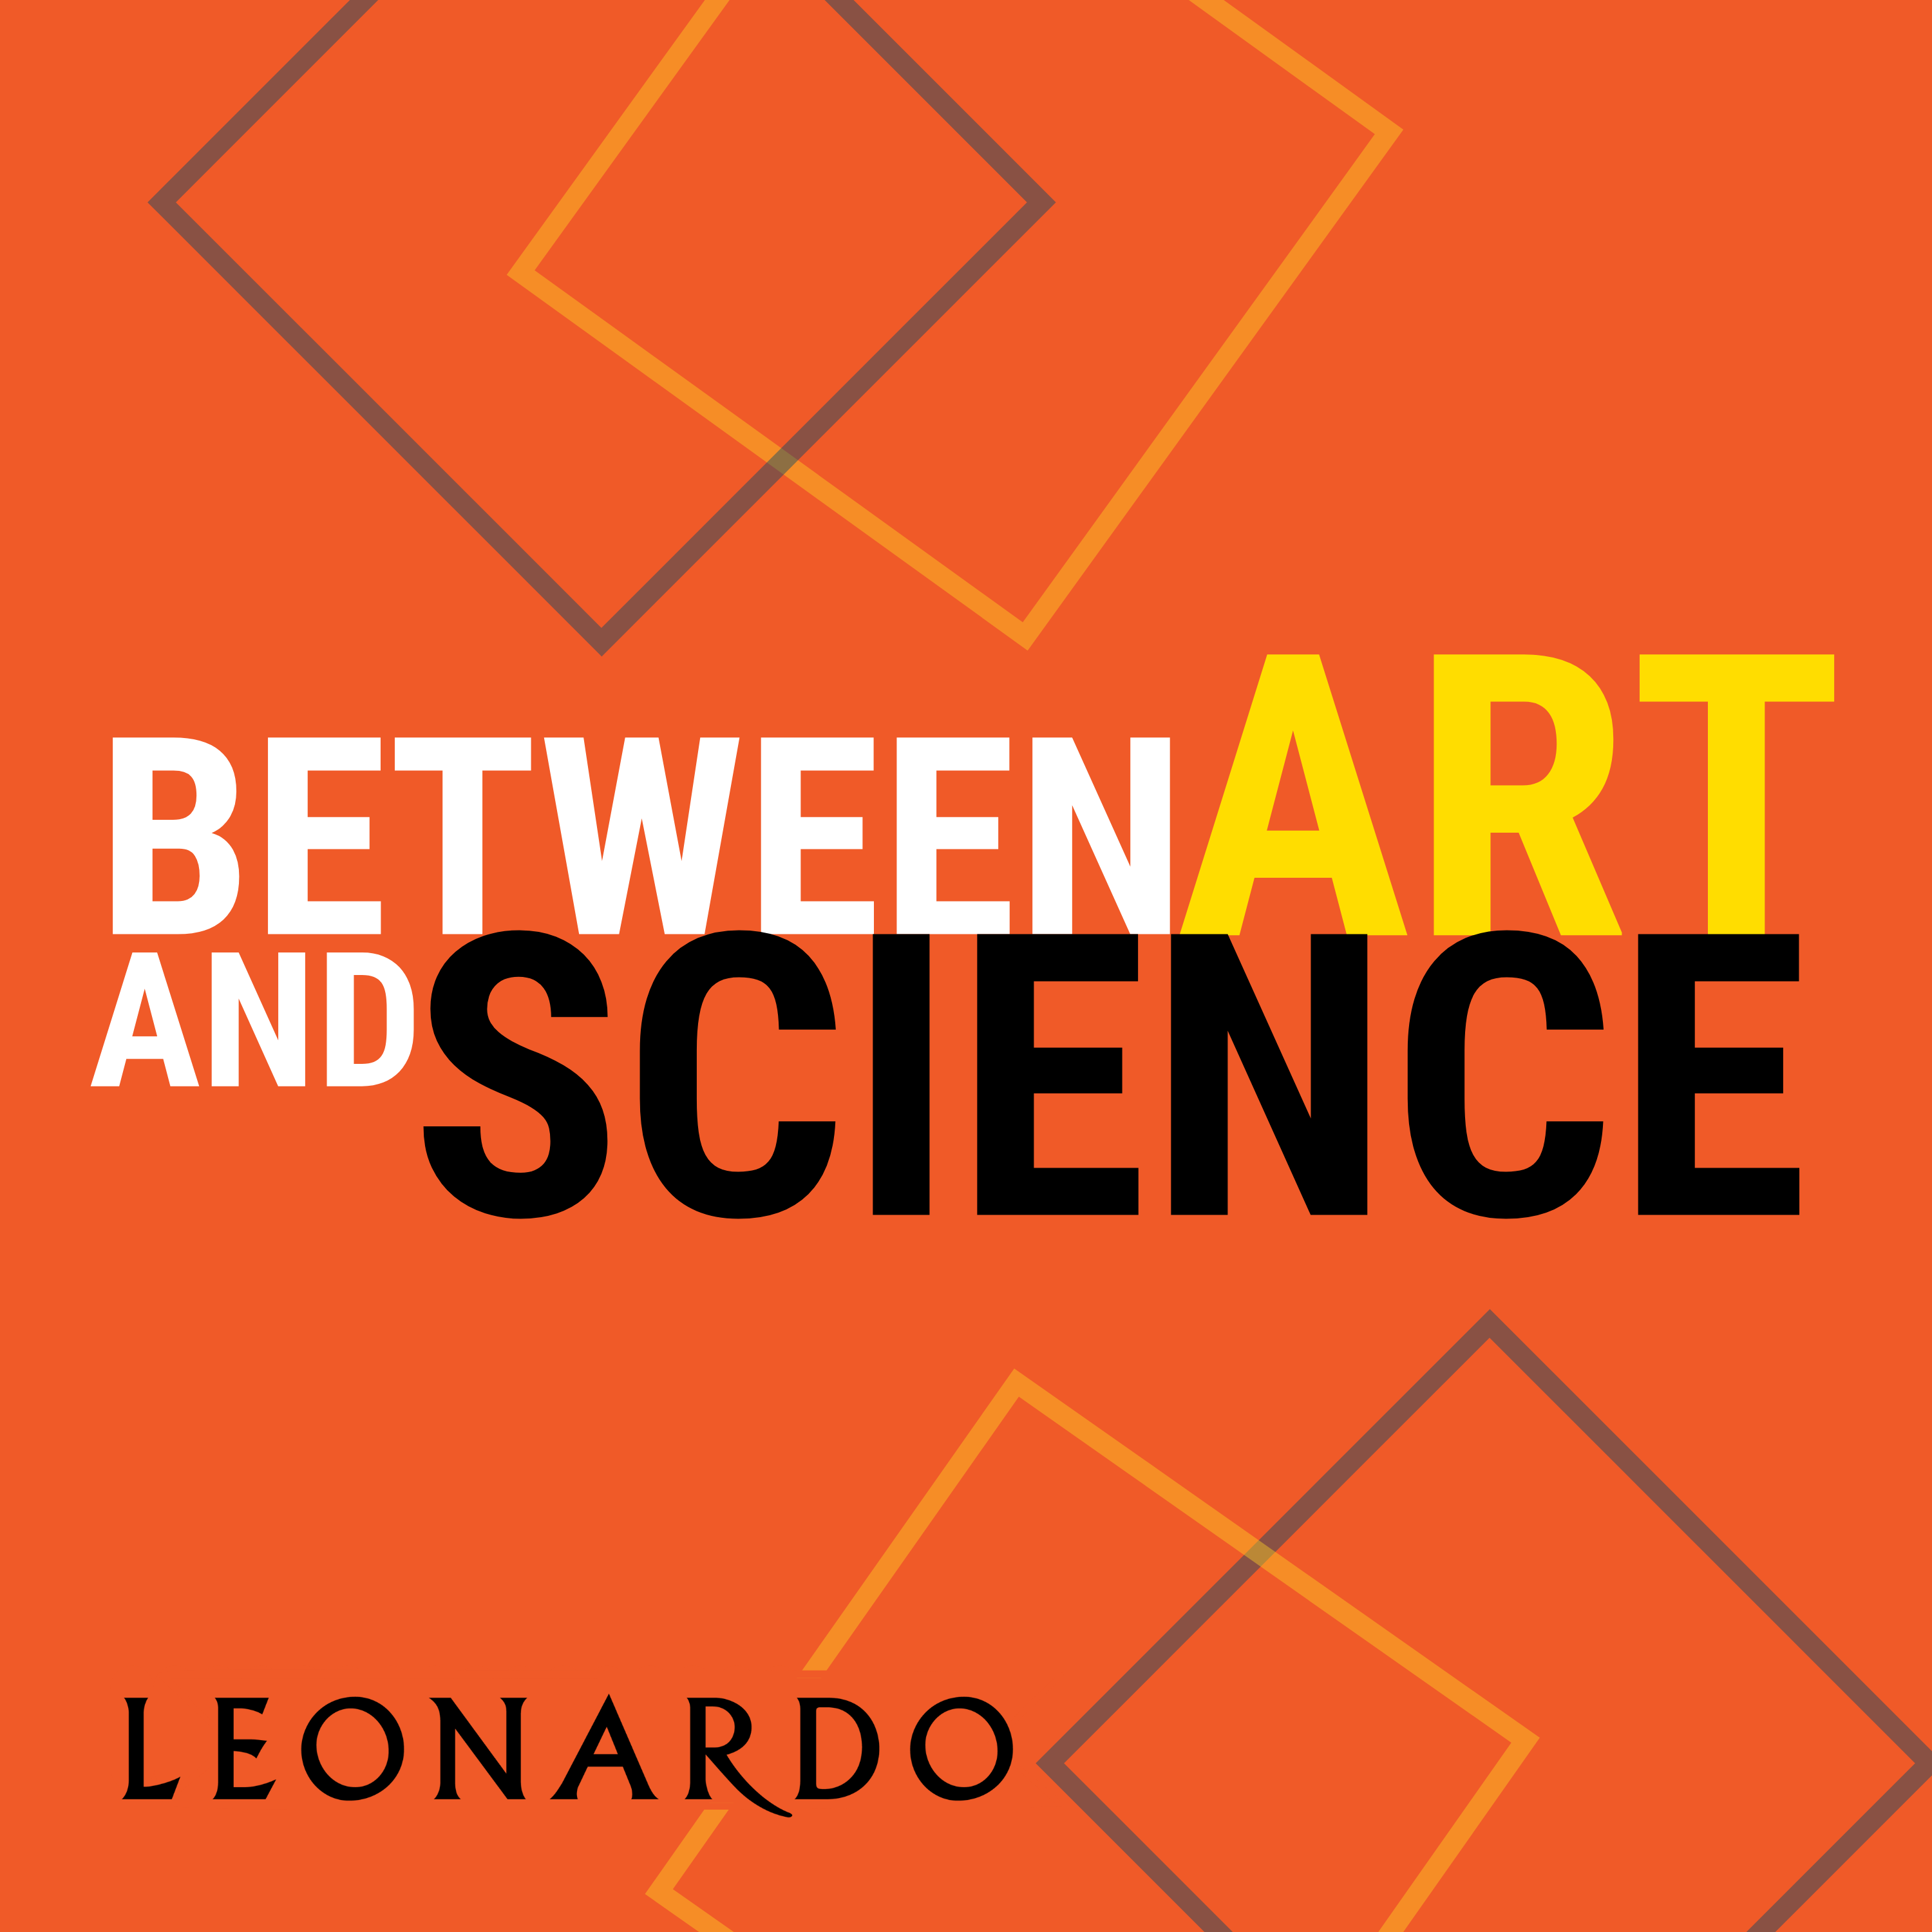 Between Art and Science